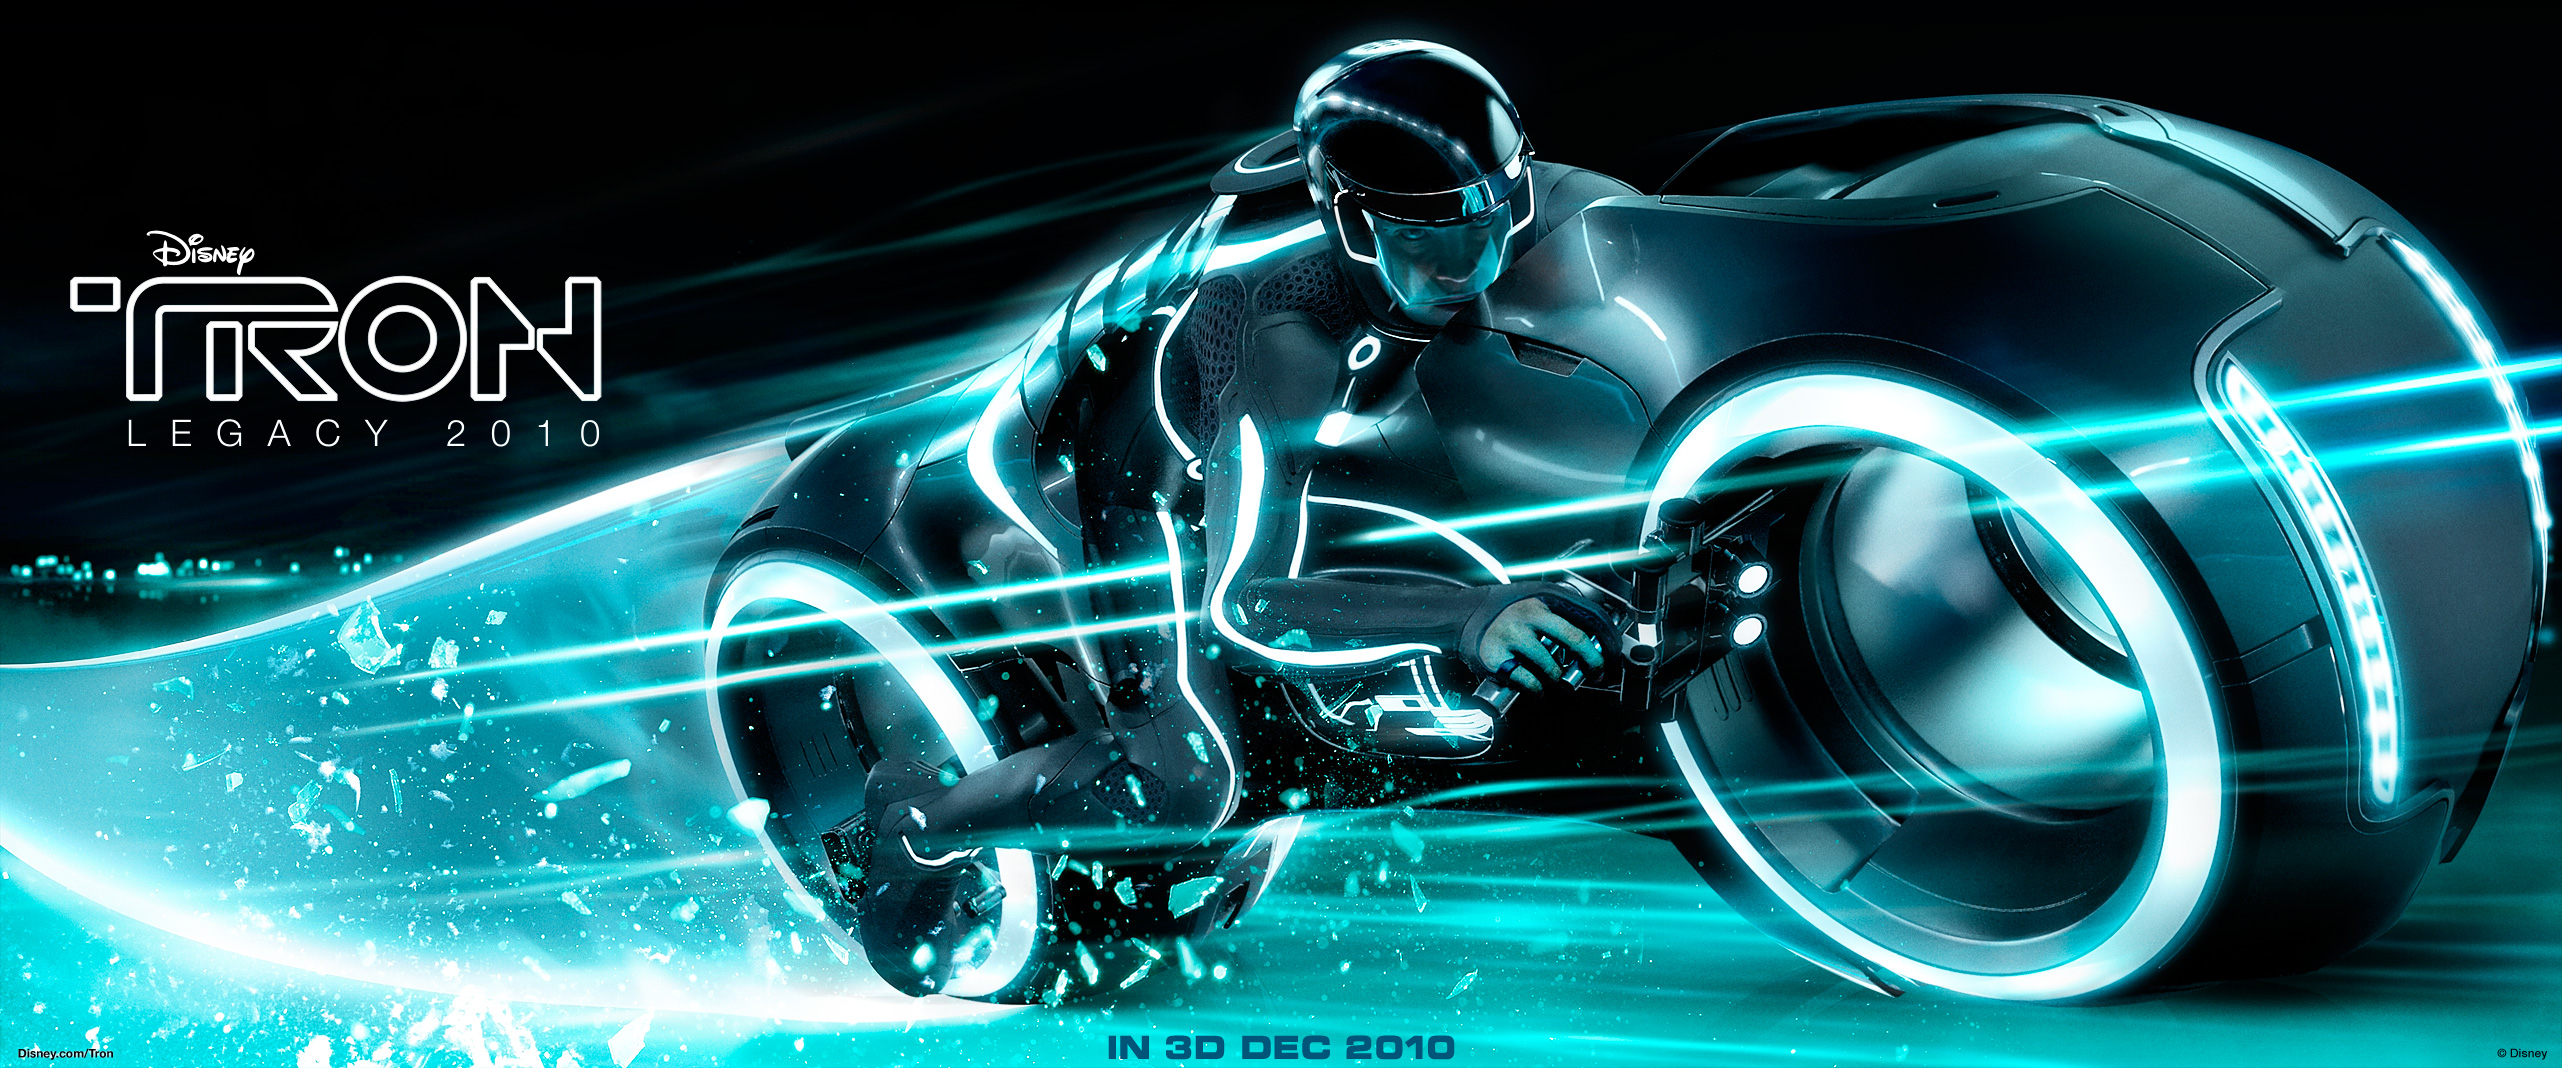 Heyu2026at ... & Lighting Inspiration: Tron Legacy | Lucept